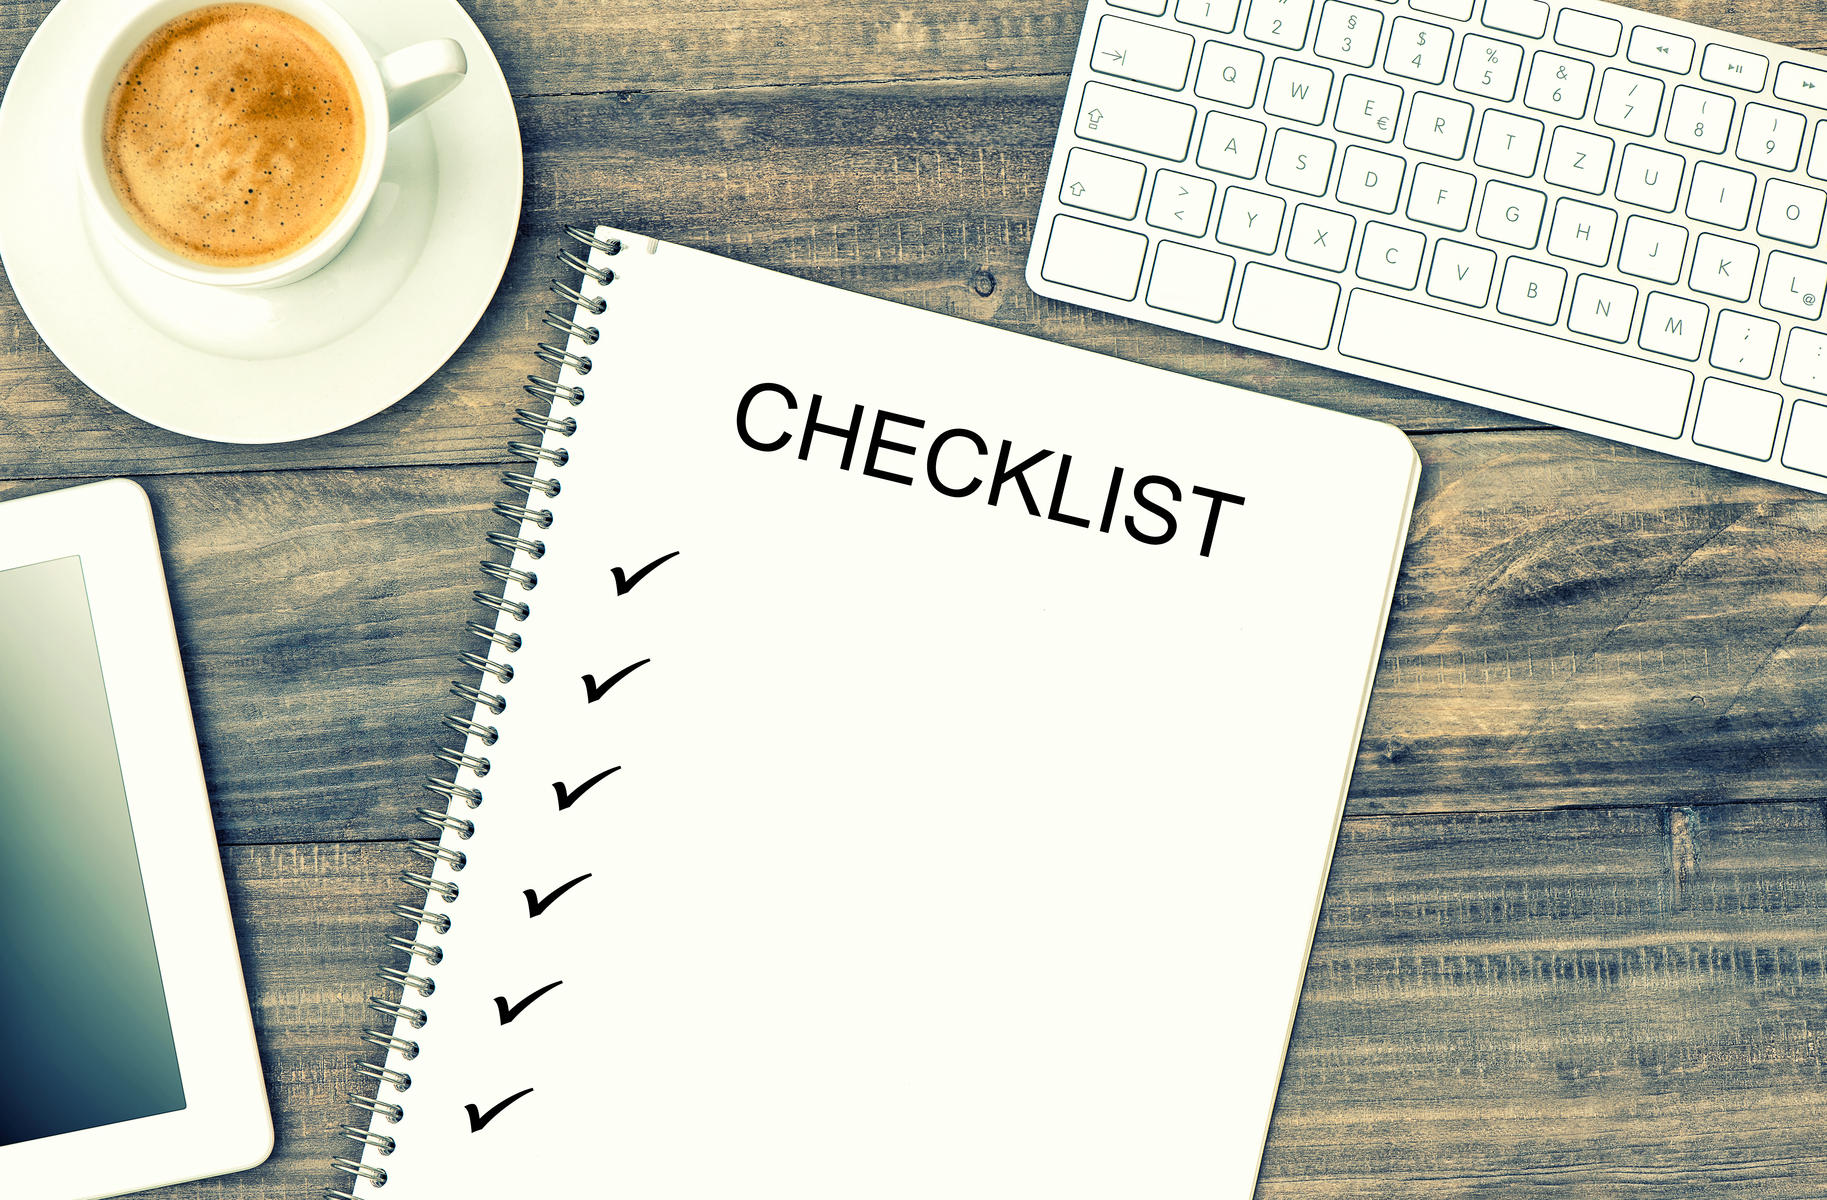 Care-giving Assessment Checklist